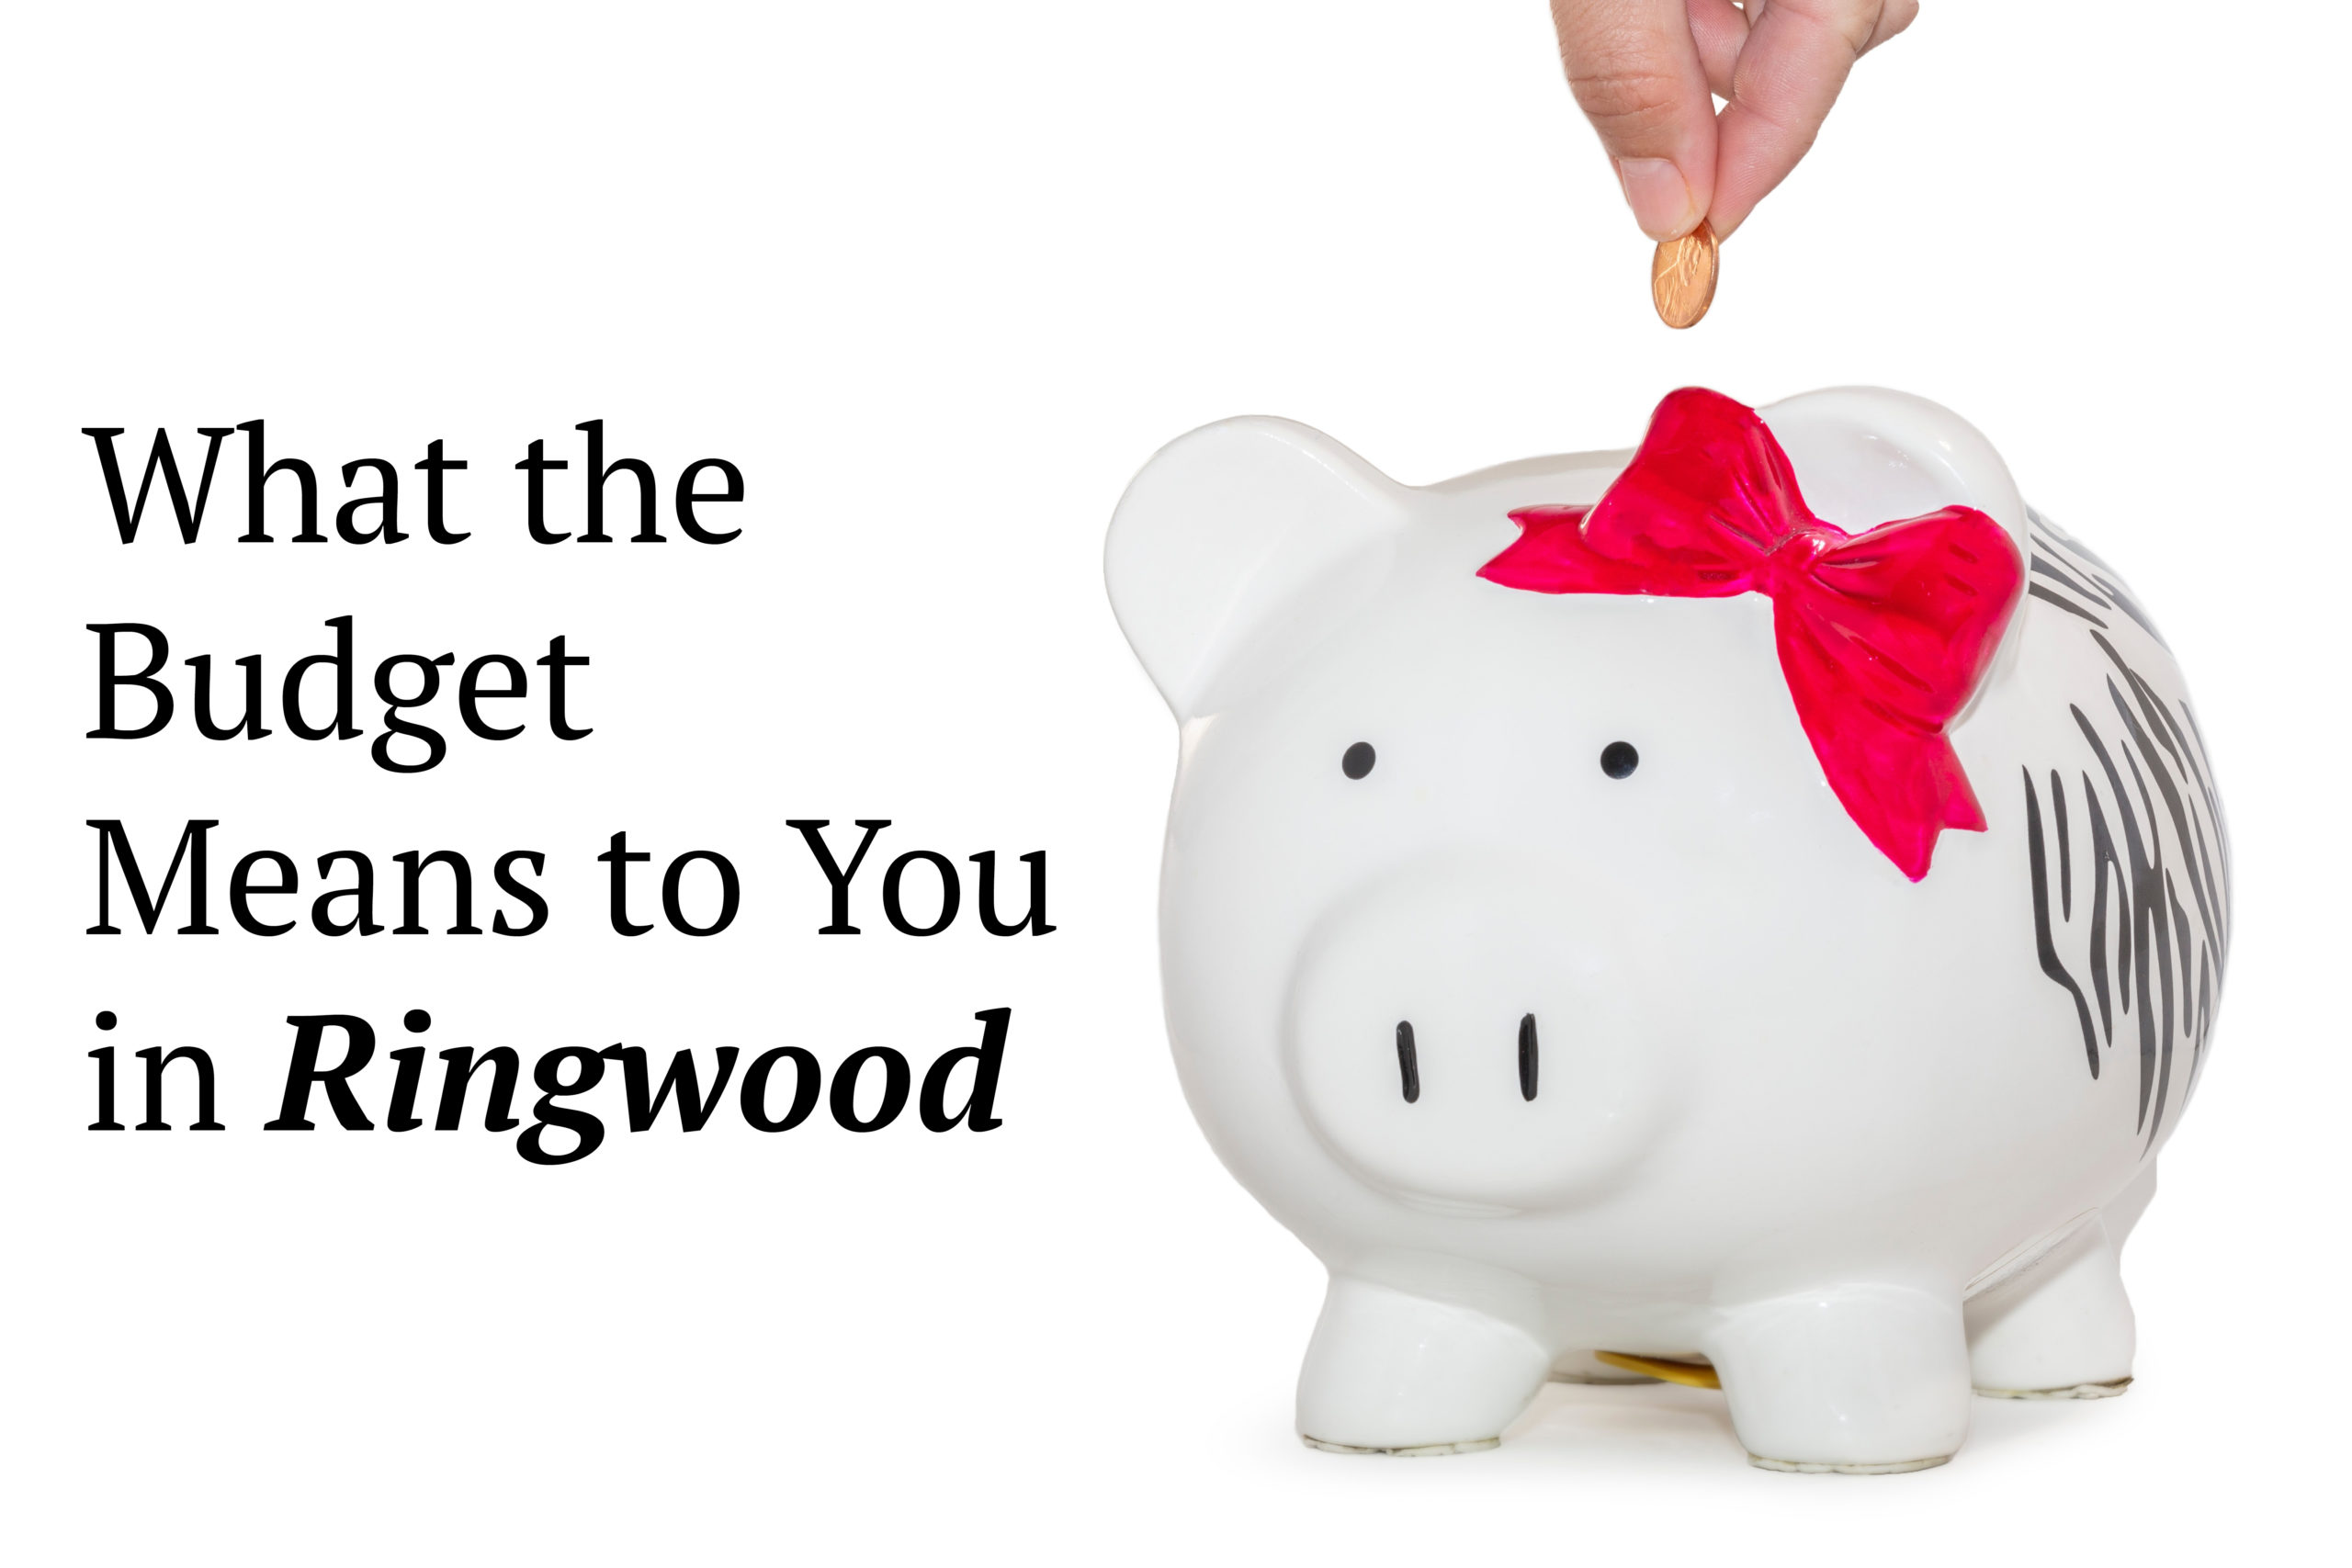 What the Budget Means to You in Ringwood